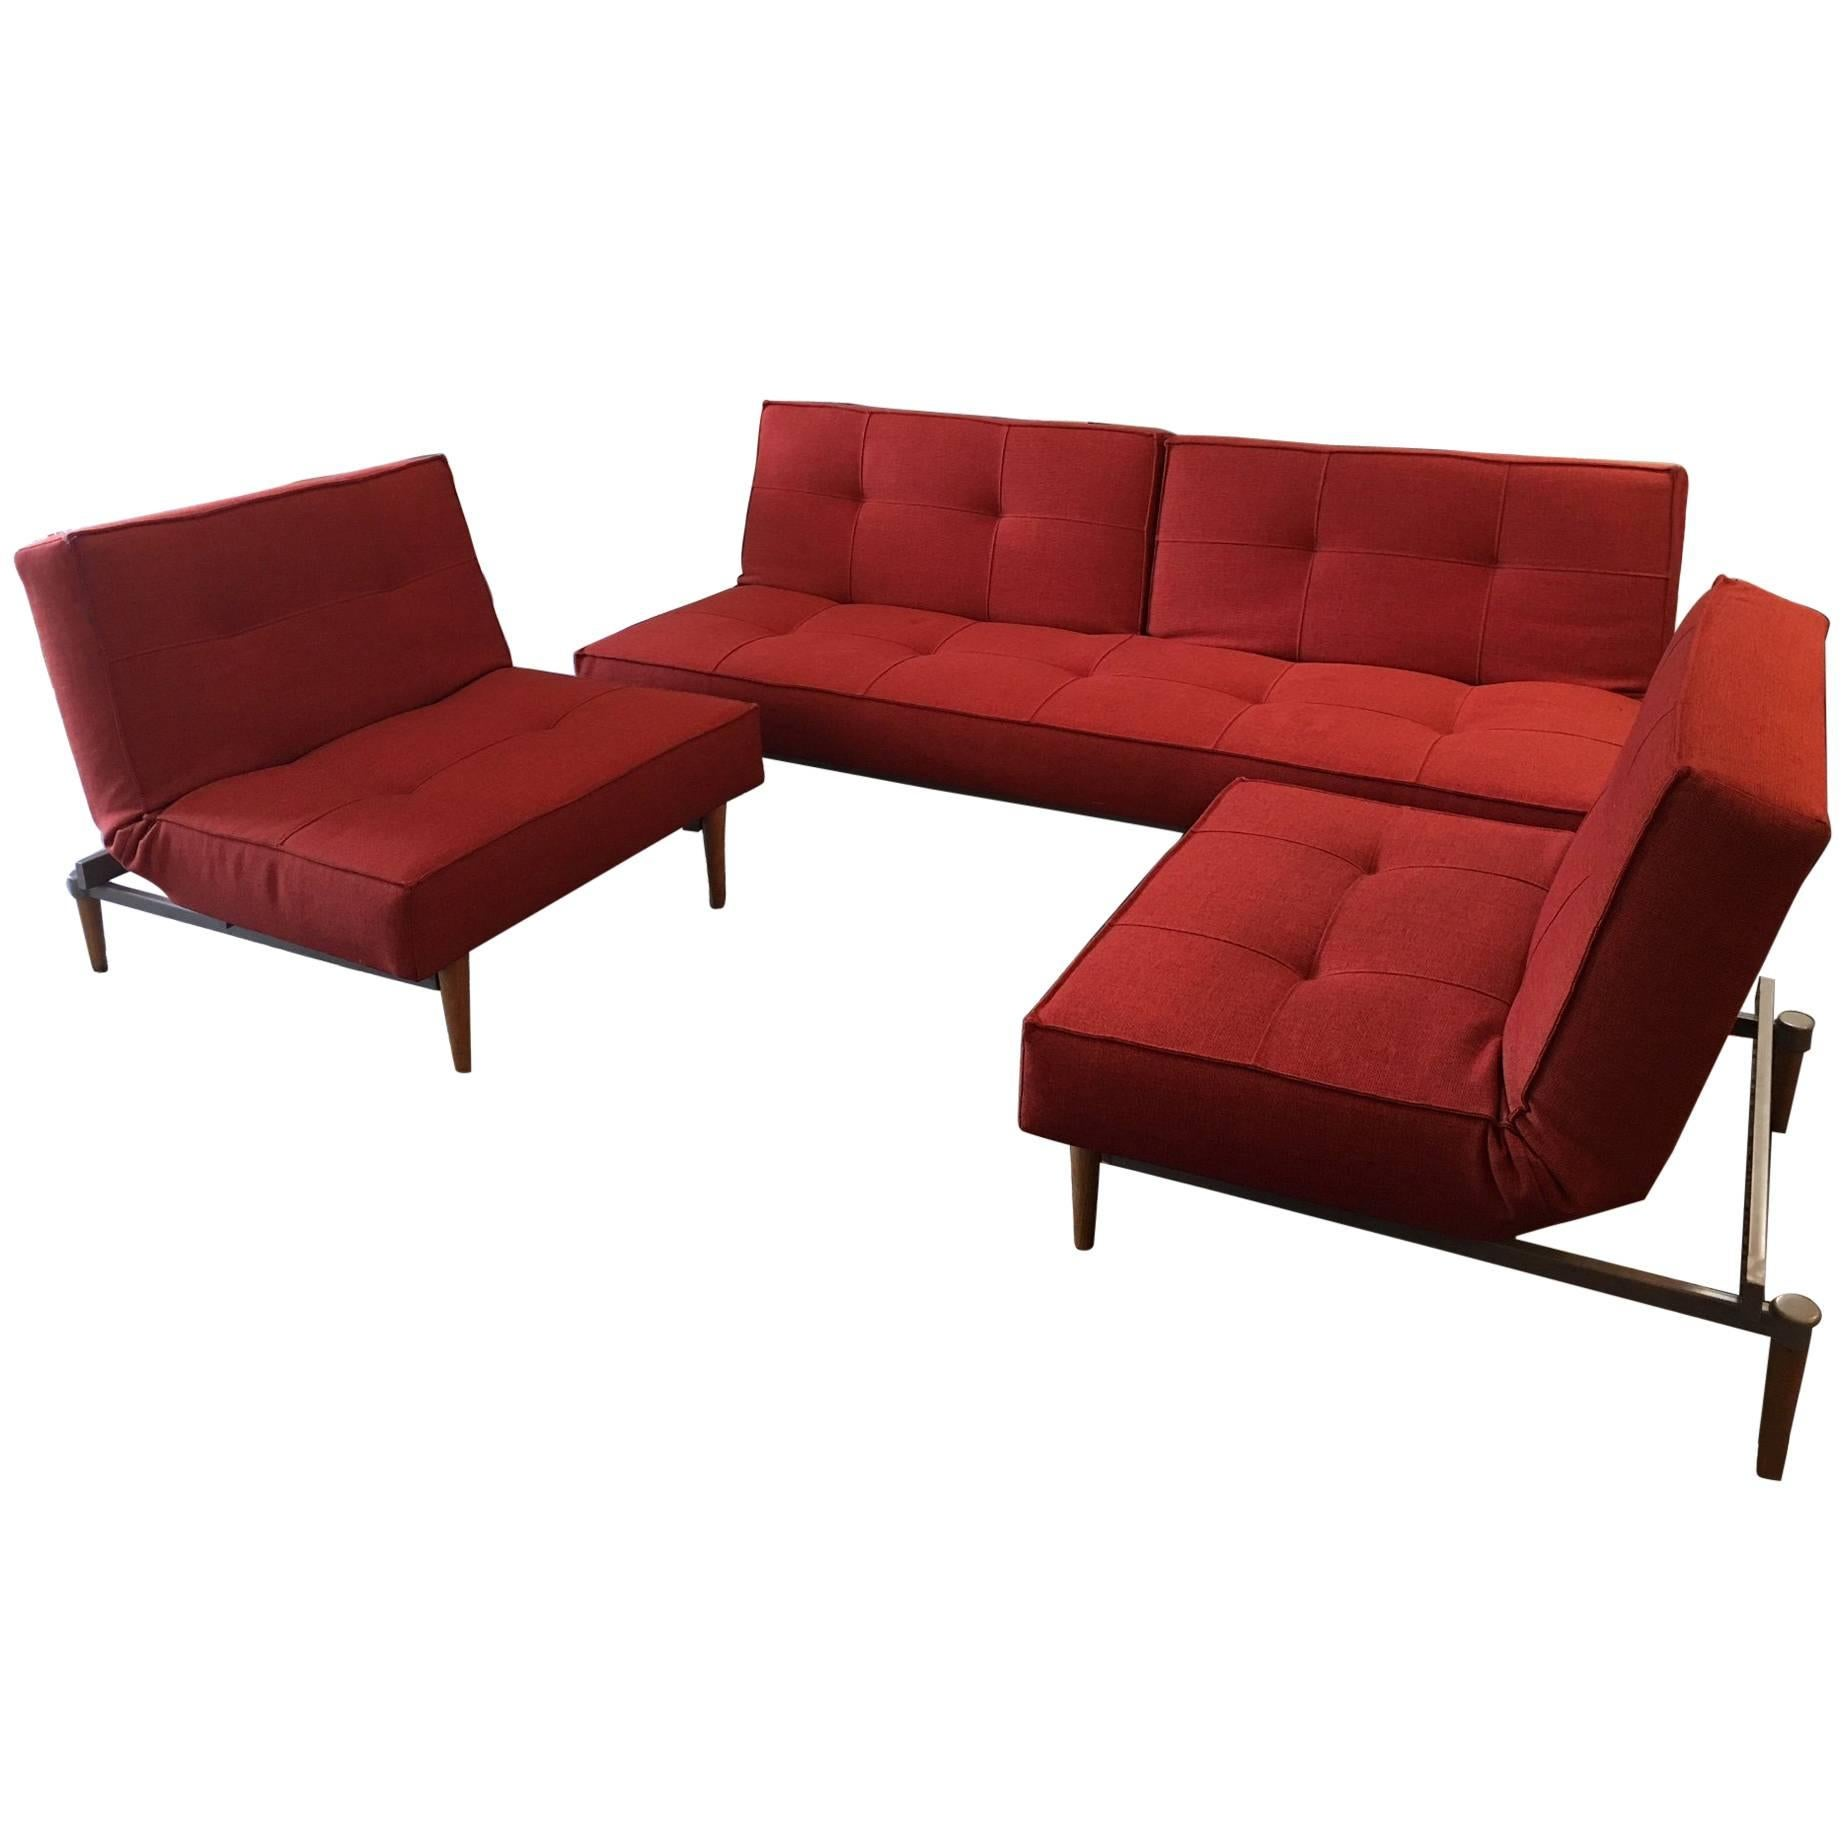 Ambiente Modern Furniture Convertible Sofa And Chairs For Sale